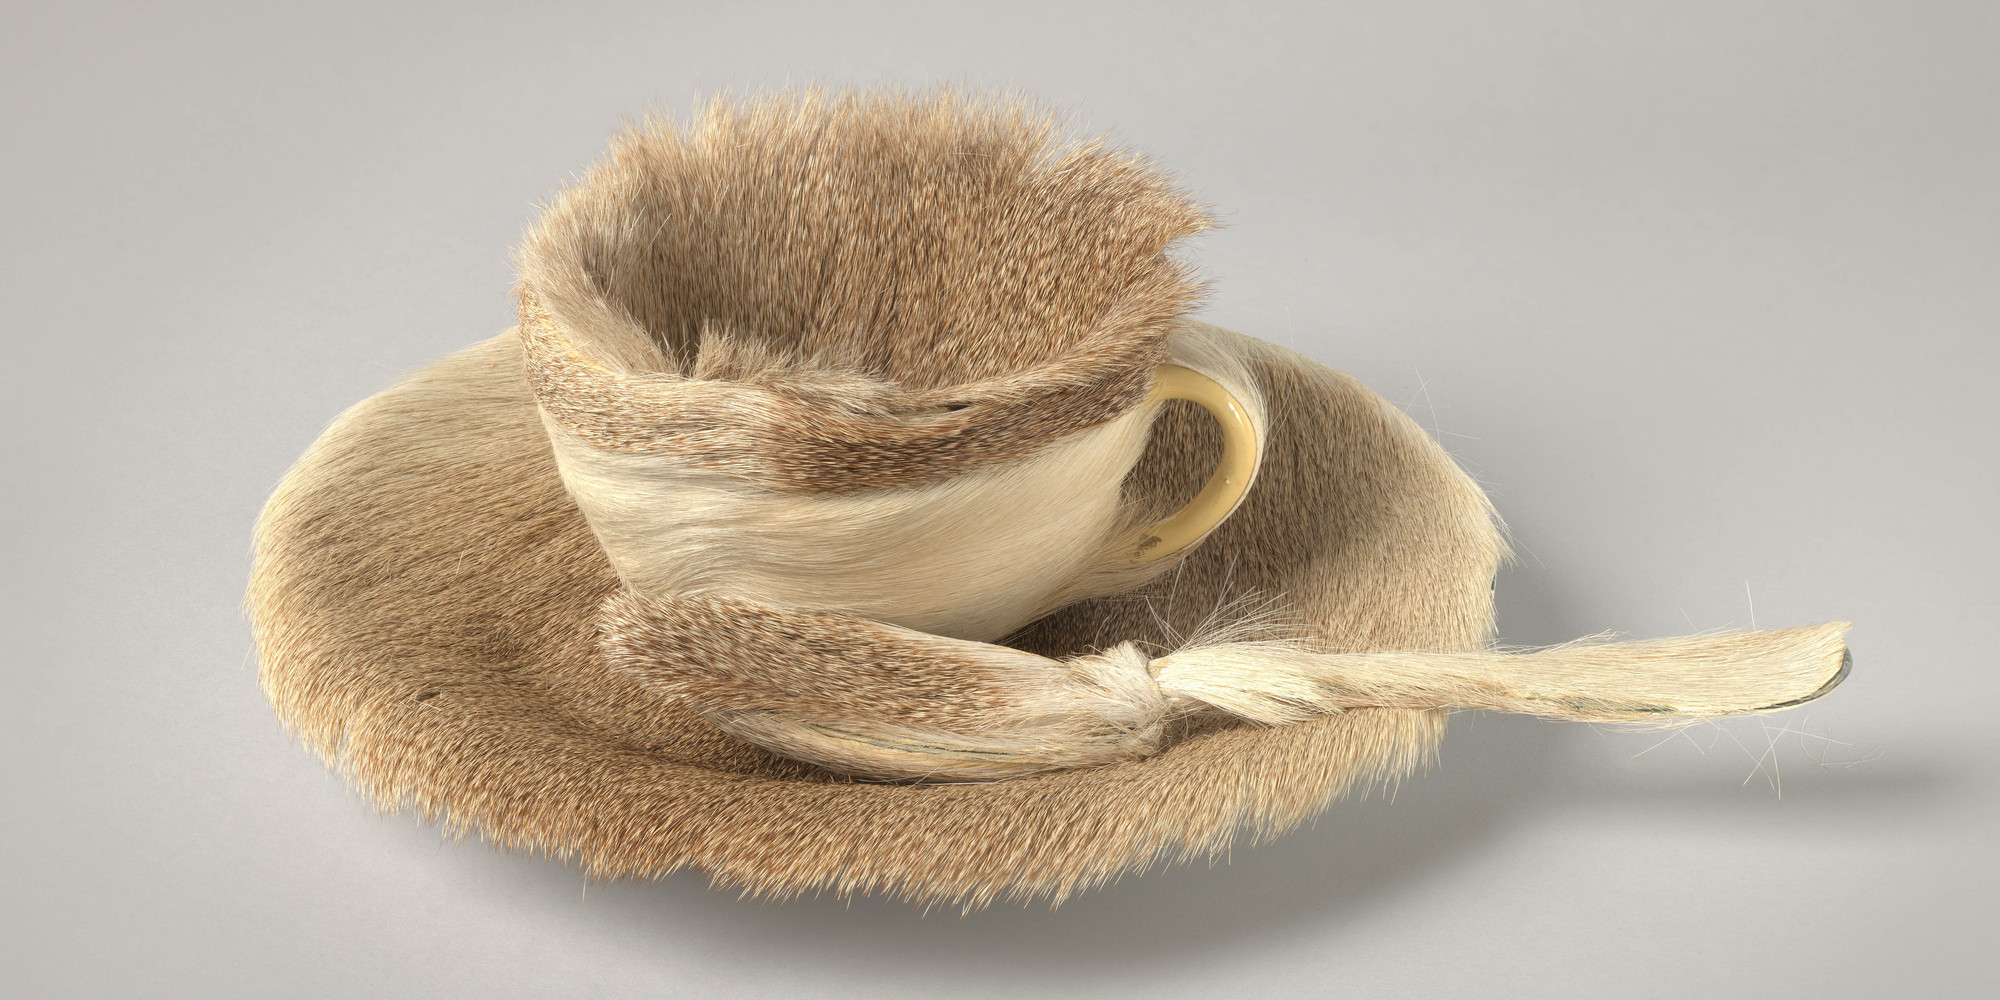 "Meret Oppenheim. Object. 1936. Fur-covered cup, saucer, and spoon; cup 4 3/8"" (10.9 cm) in diameter; saucer 9 3/8"" (23.7 cm) in diameter; spoon 8"" (20.2 cm) long, overall height 2 7/8"" (7.3 cm). Purchase. © 2020 Artists Rights Society (ARS), New York/Pro Litteris, Zurich"